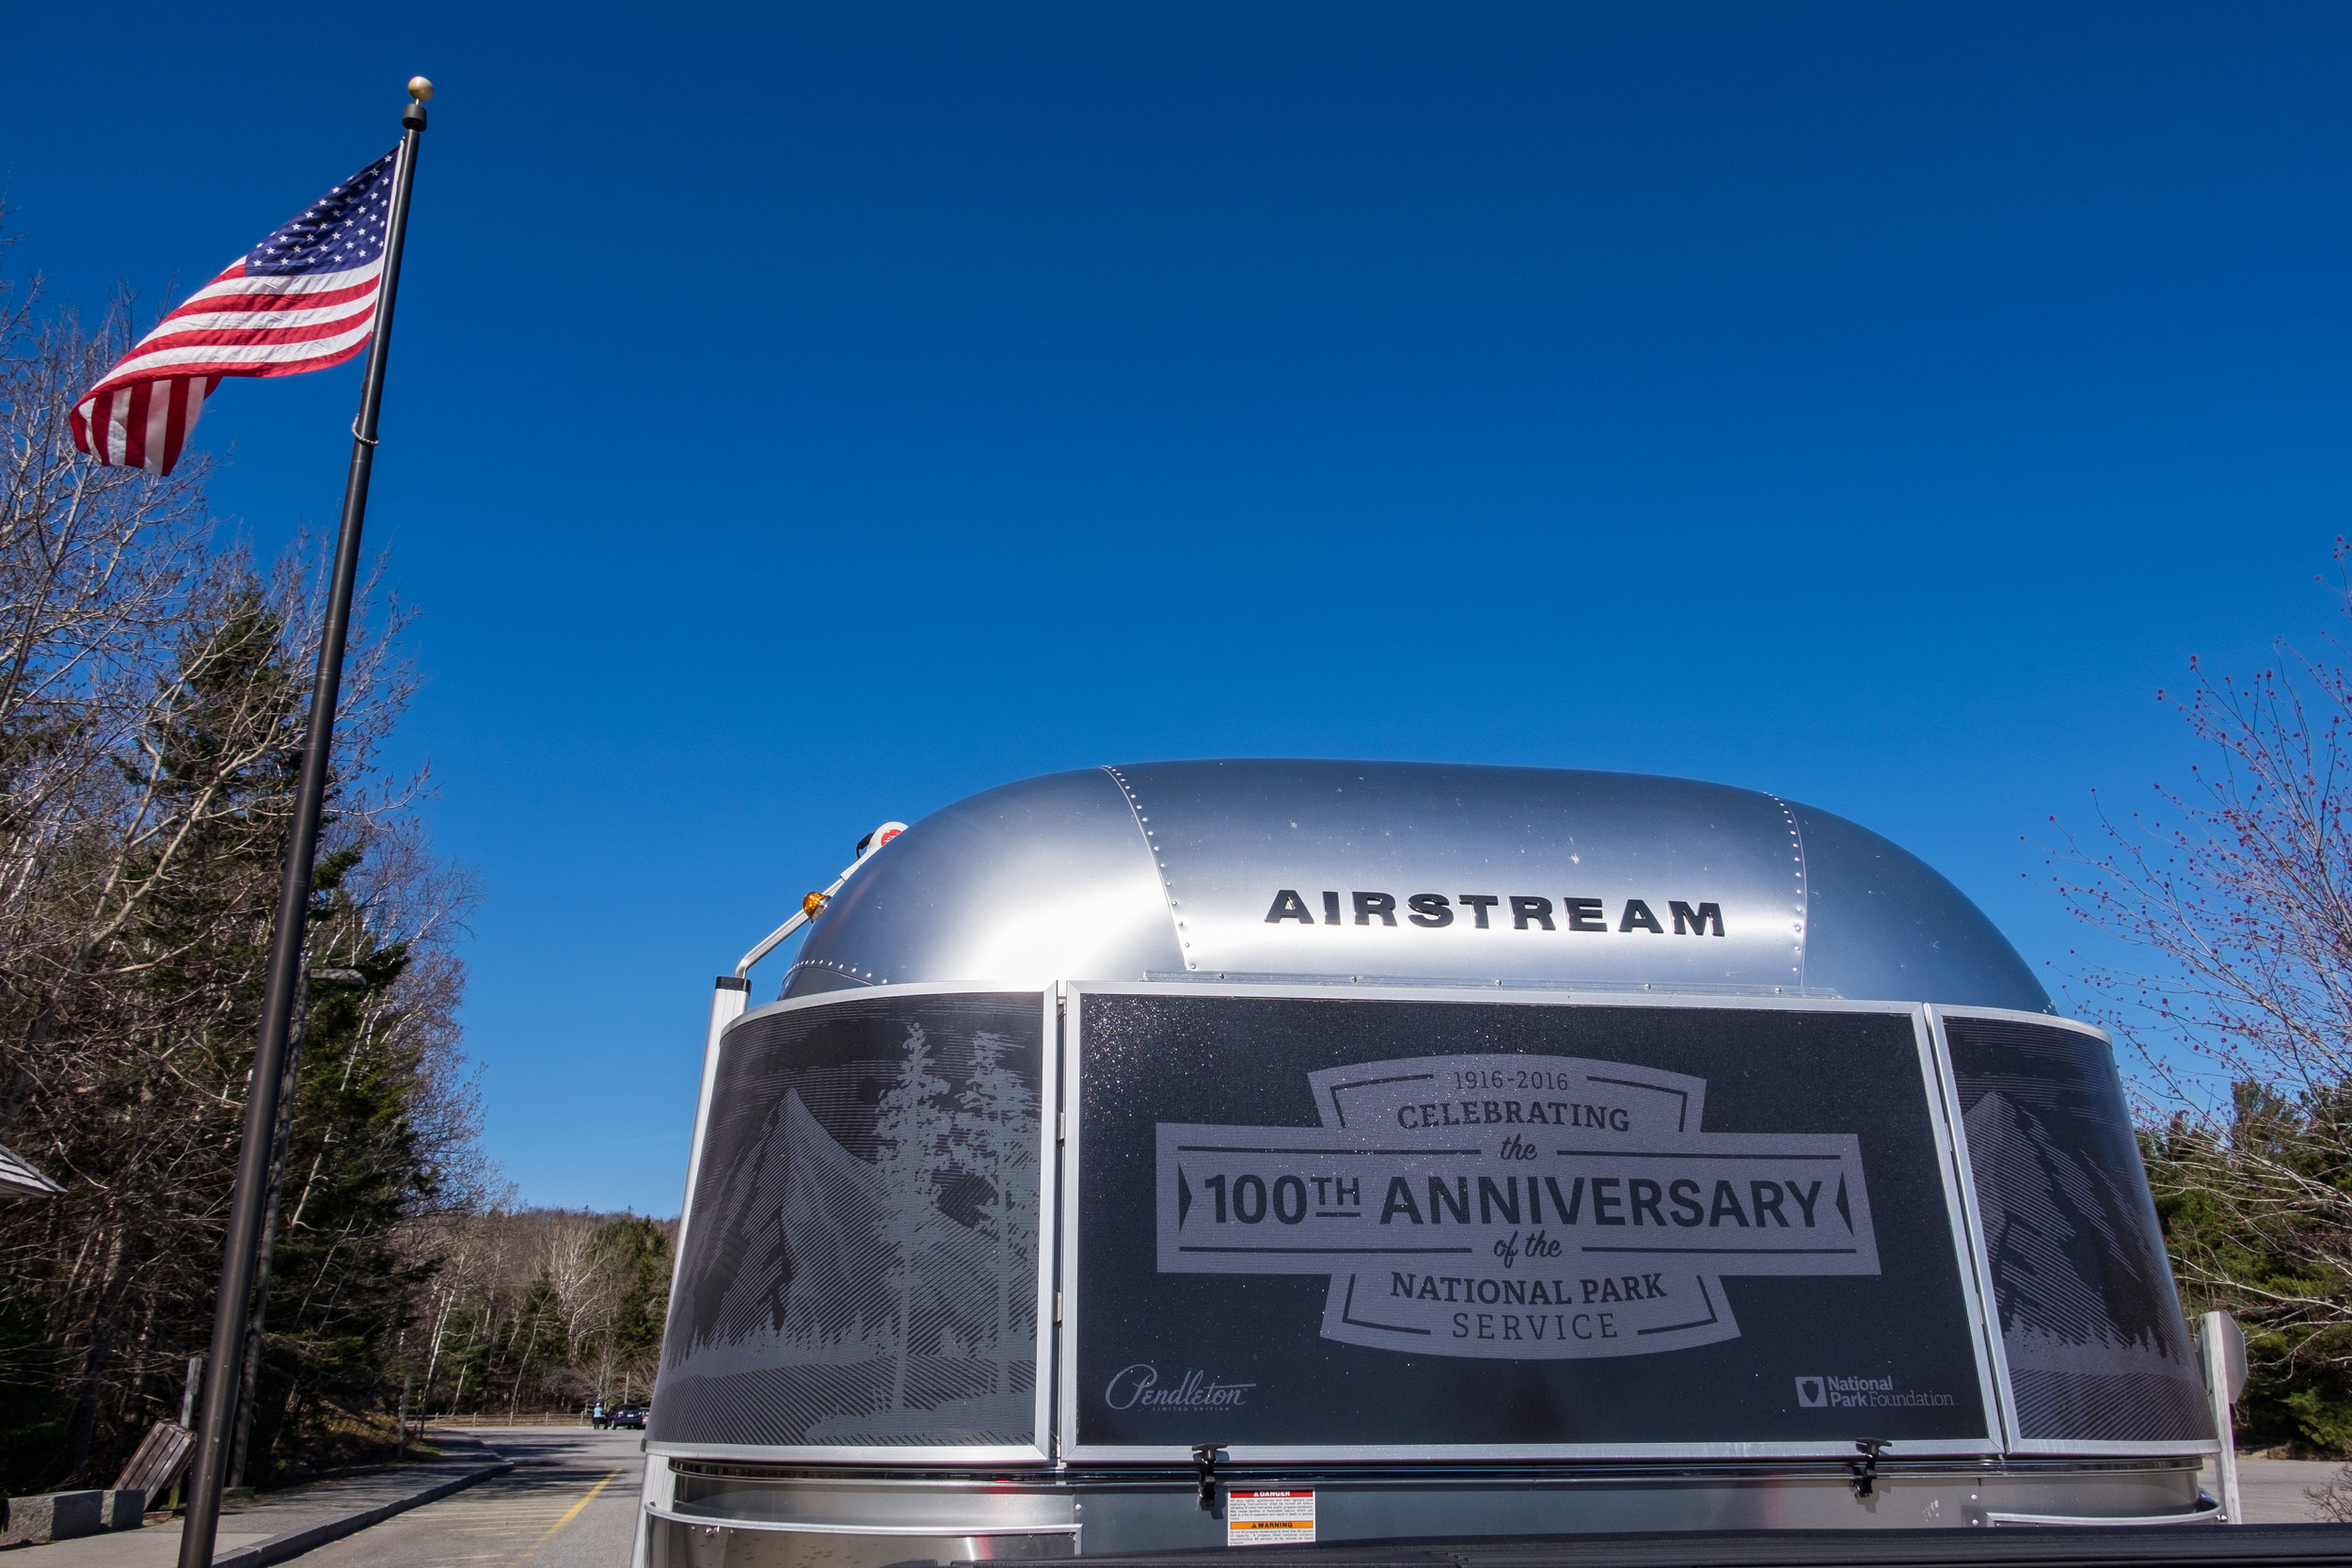 A stop at the Acadia National Park Visitor Center with the Limited Edition National Parks Pendleton Airstream. We think the tree etchings on the Airstream were inspired by Maine -- very fitting!